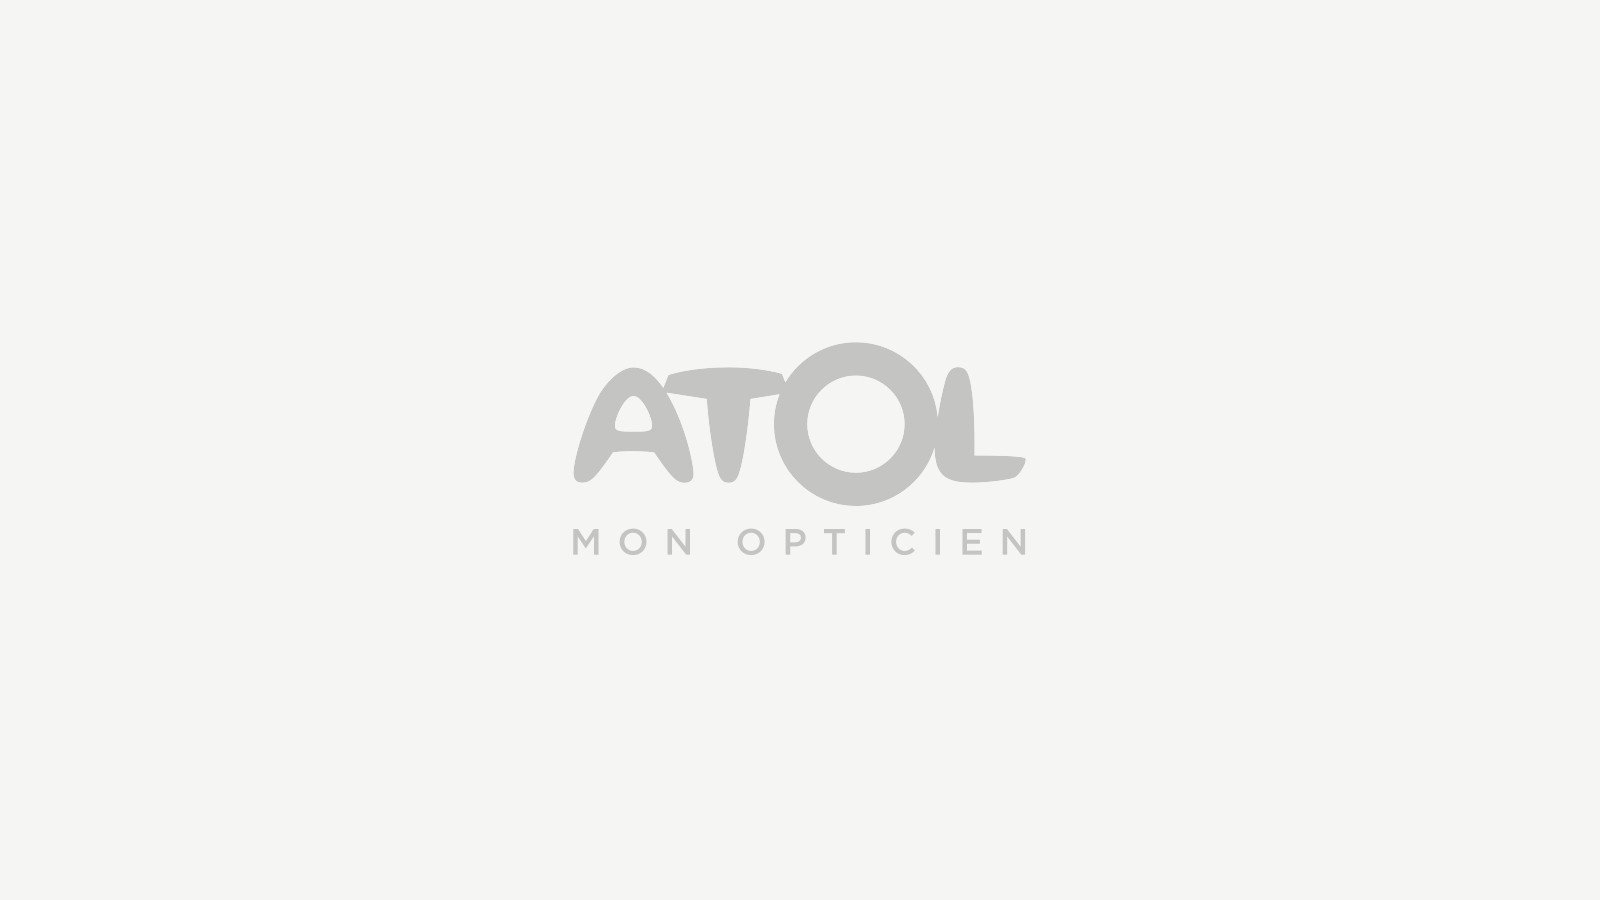 633b161db7aac3 Lentilles de contact ULTRA pour Presbyte High (x6) - ATOL Les Opticiens